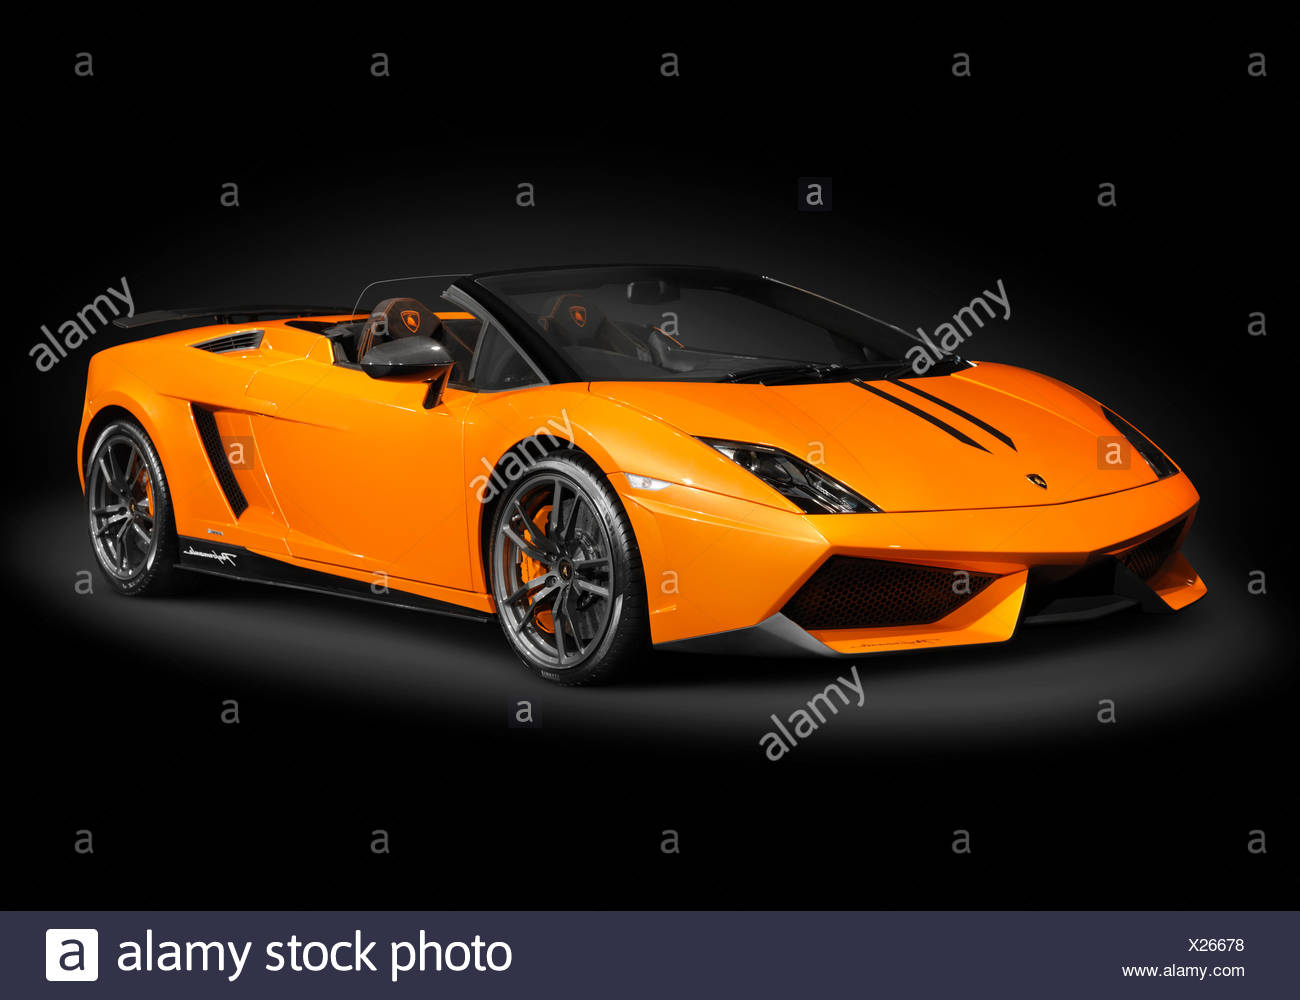 Orange Lamborghini Gallardo LP570 4 Spyder Performante   Stock Image